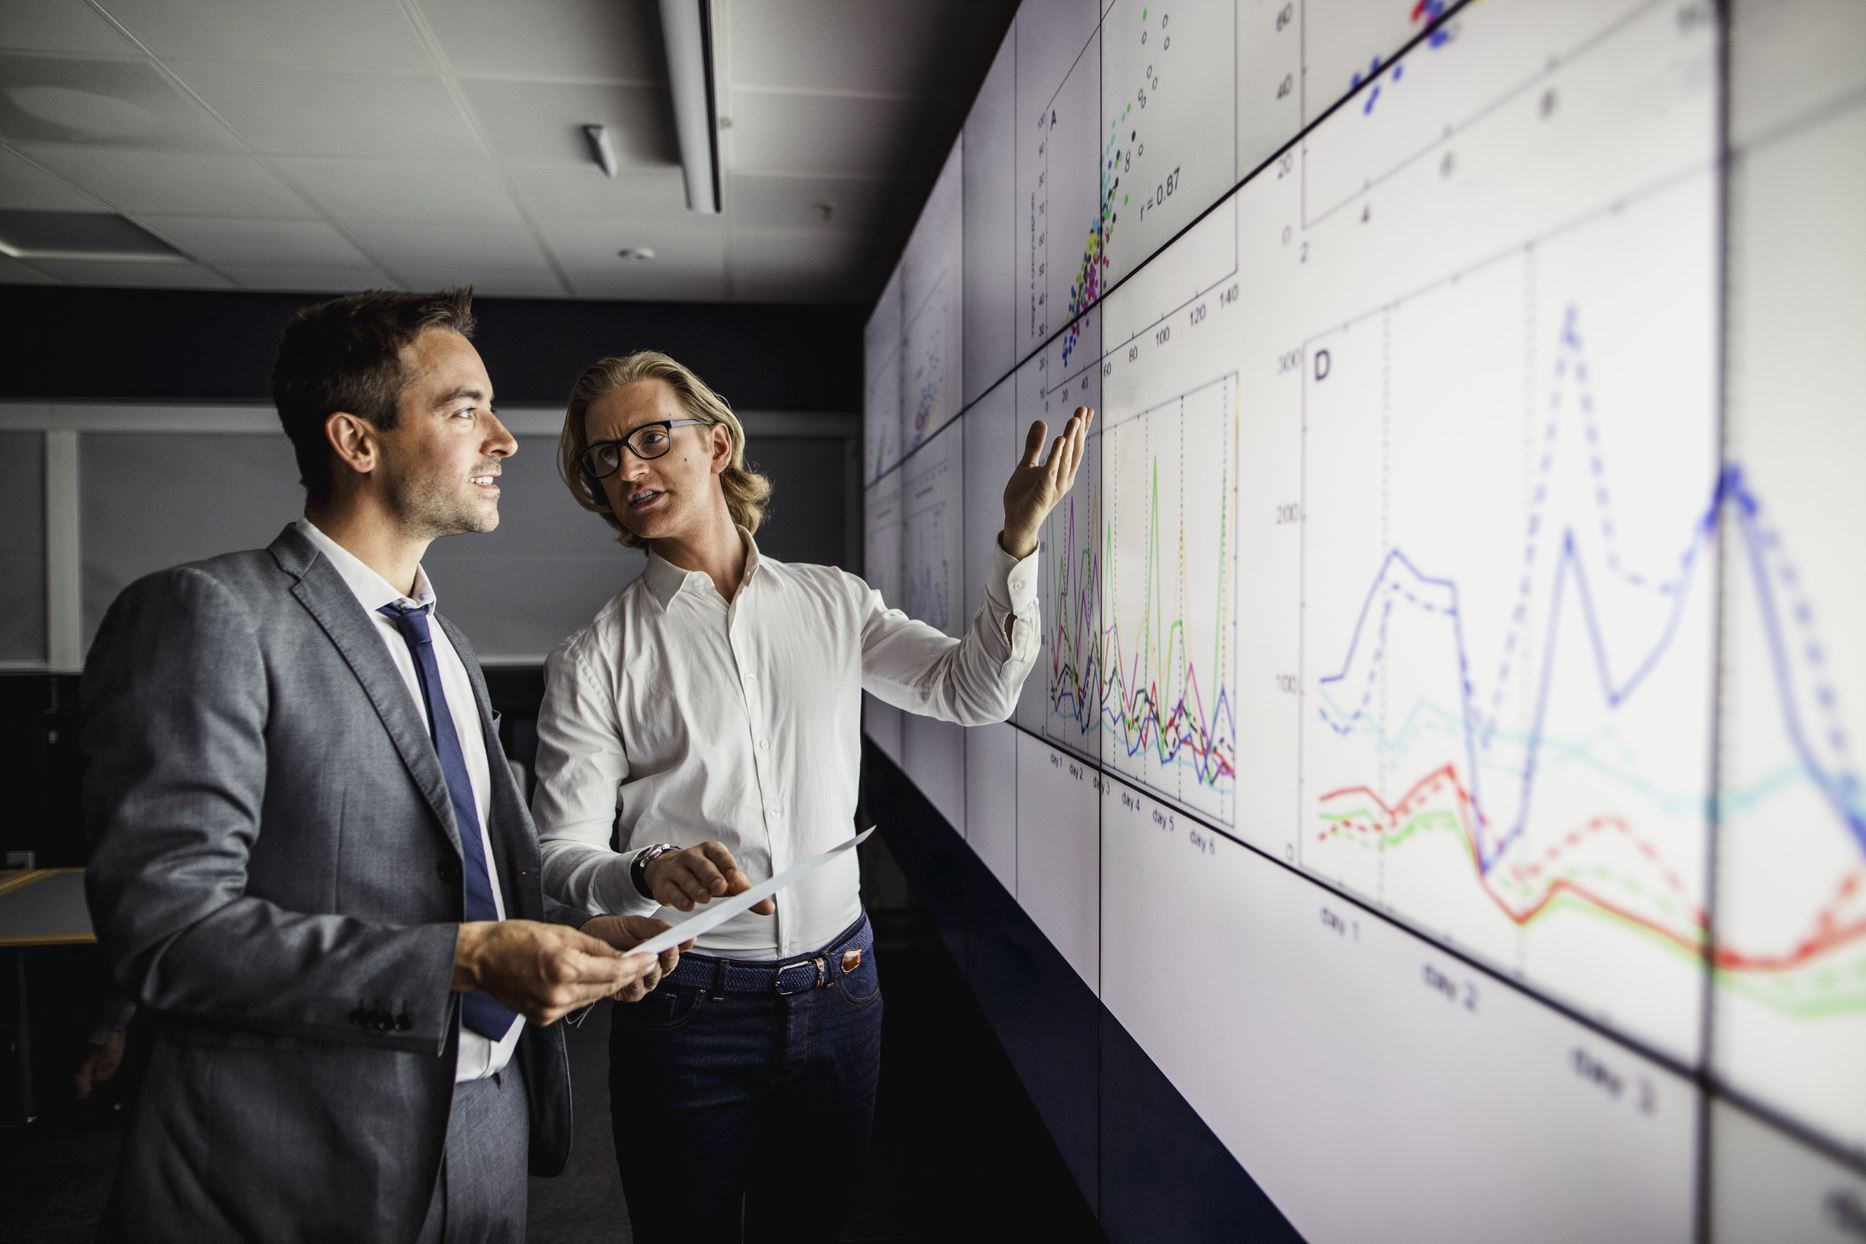 two people looking at graphs on the board and talking